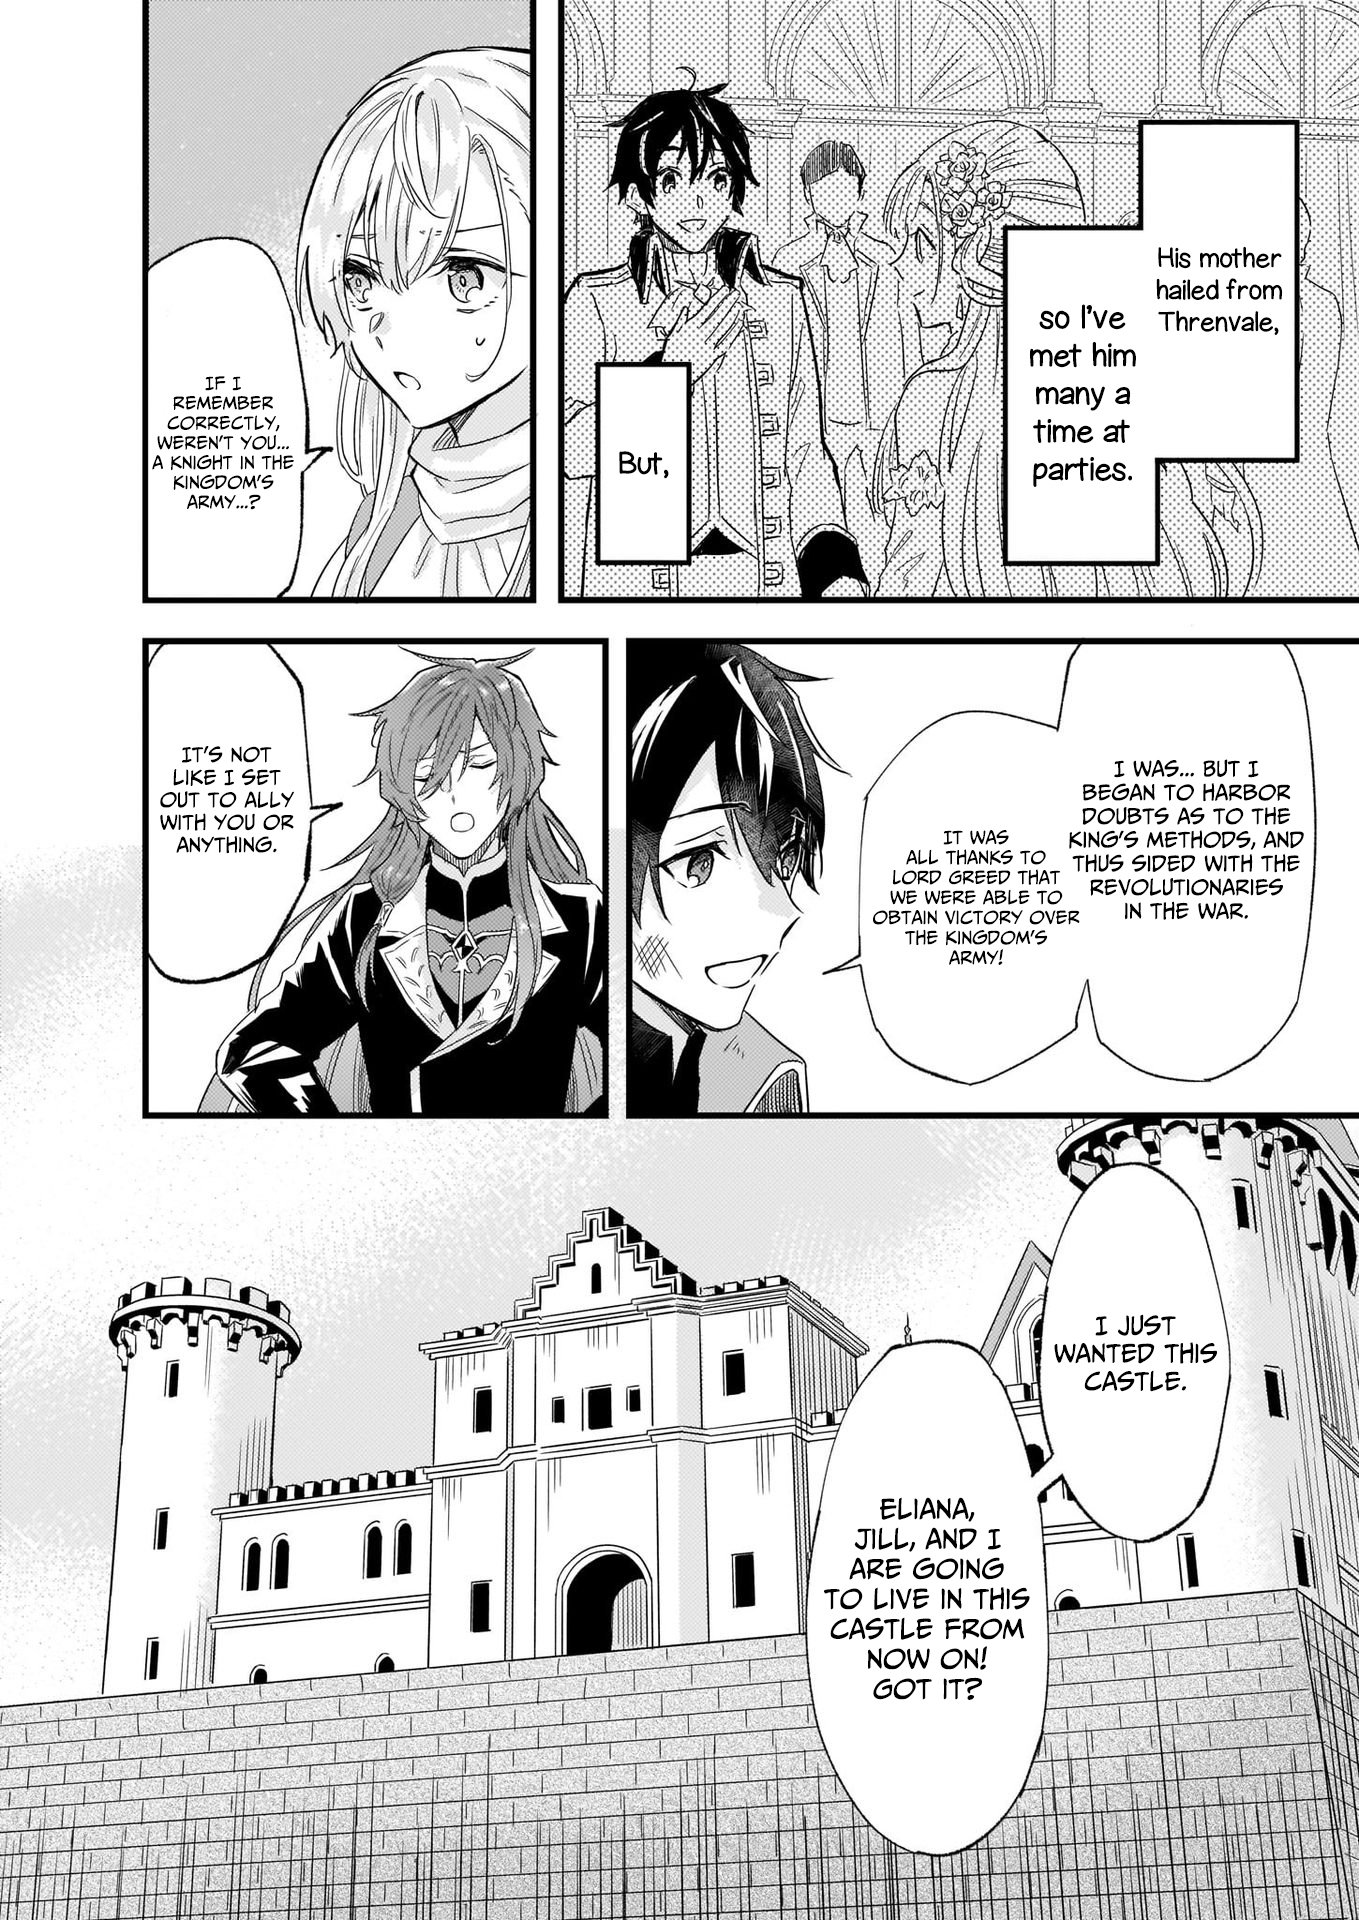 Manga I was Told to Relinquish My Fiance to My Little Sister, and the Greatest Dragon Took a Liking to Me and Unbelievably Took Over the Kingdom - Chapter 9 Page 16